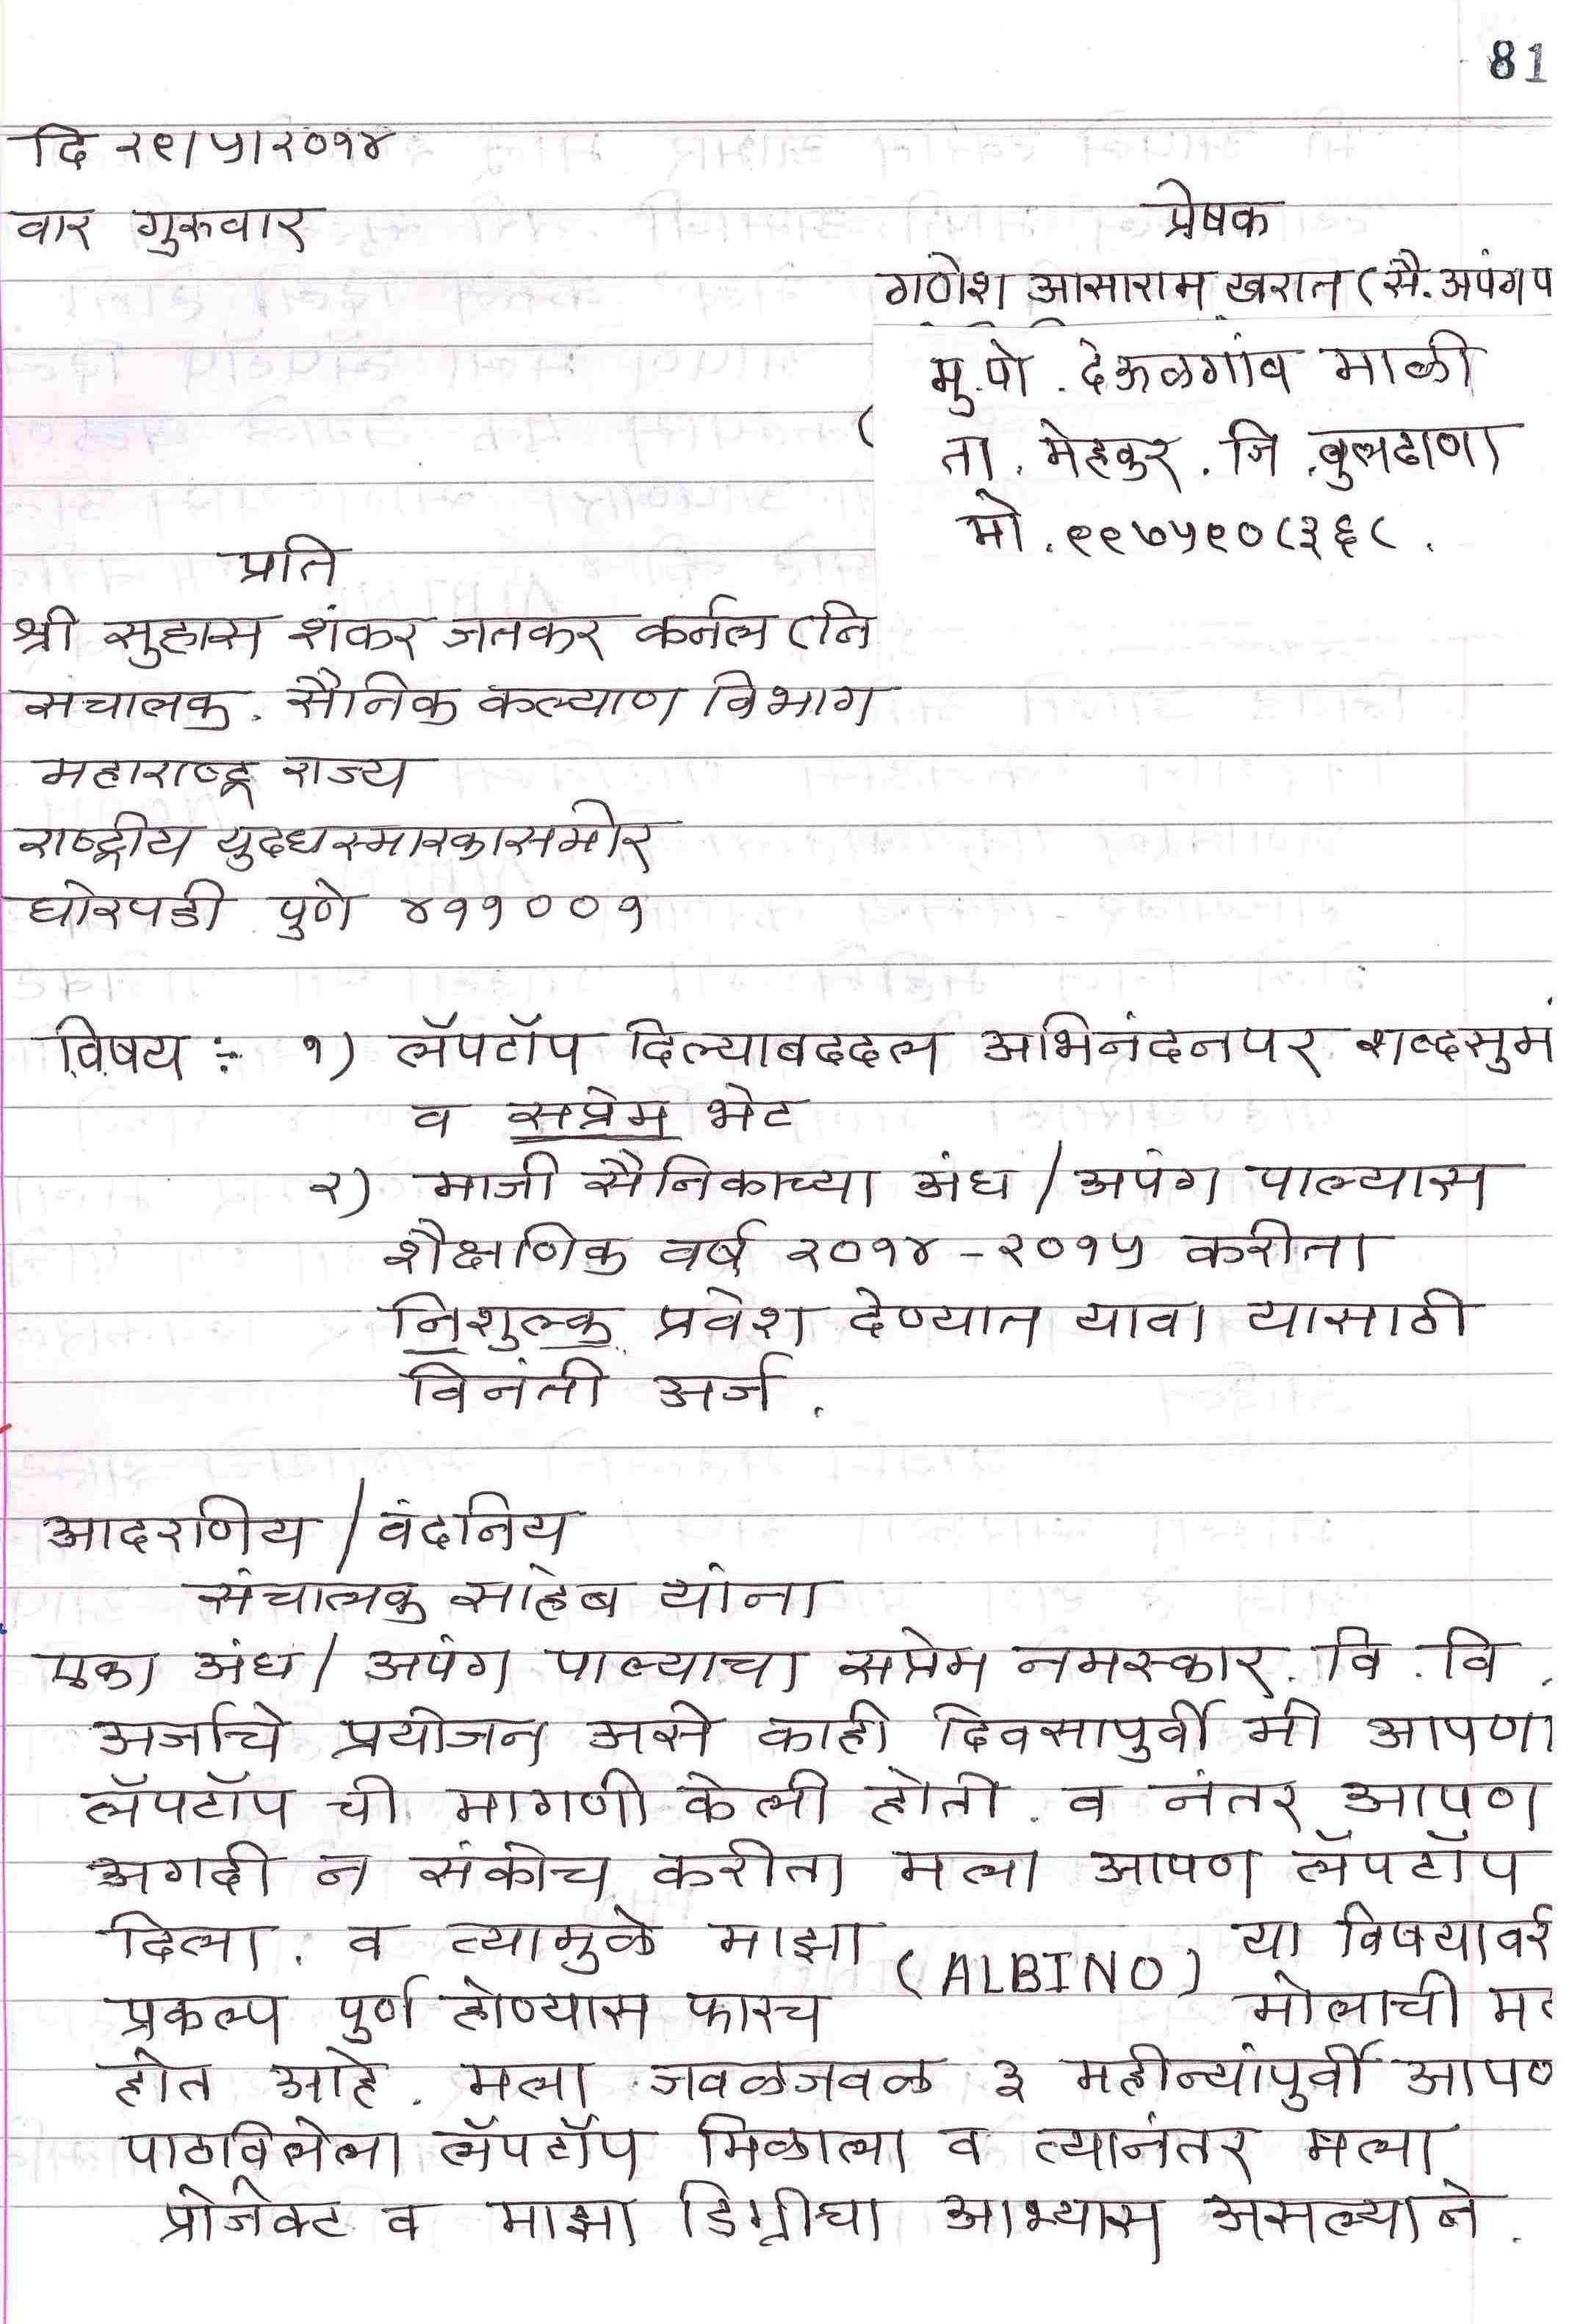 004 Staggering Hindi Letter Writing Format Pdf Free Download Concept Full